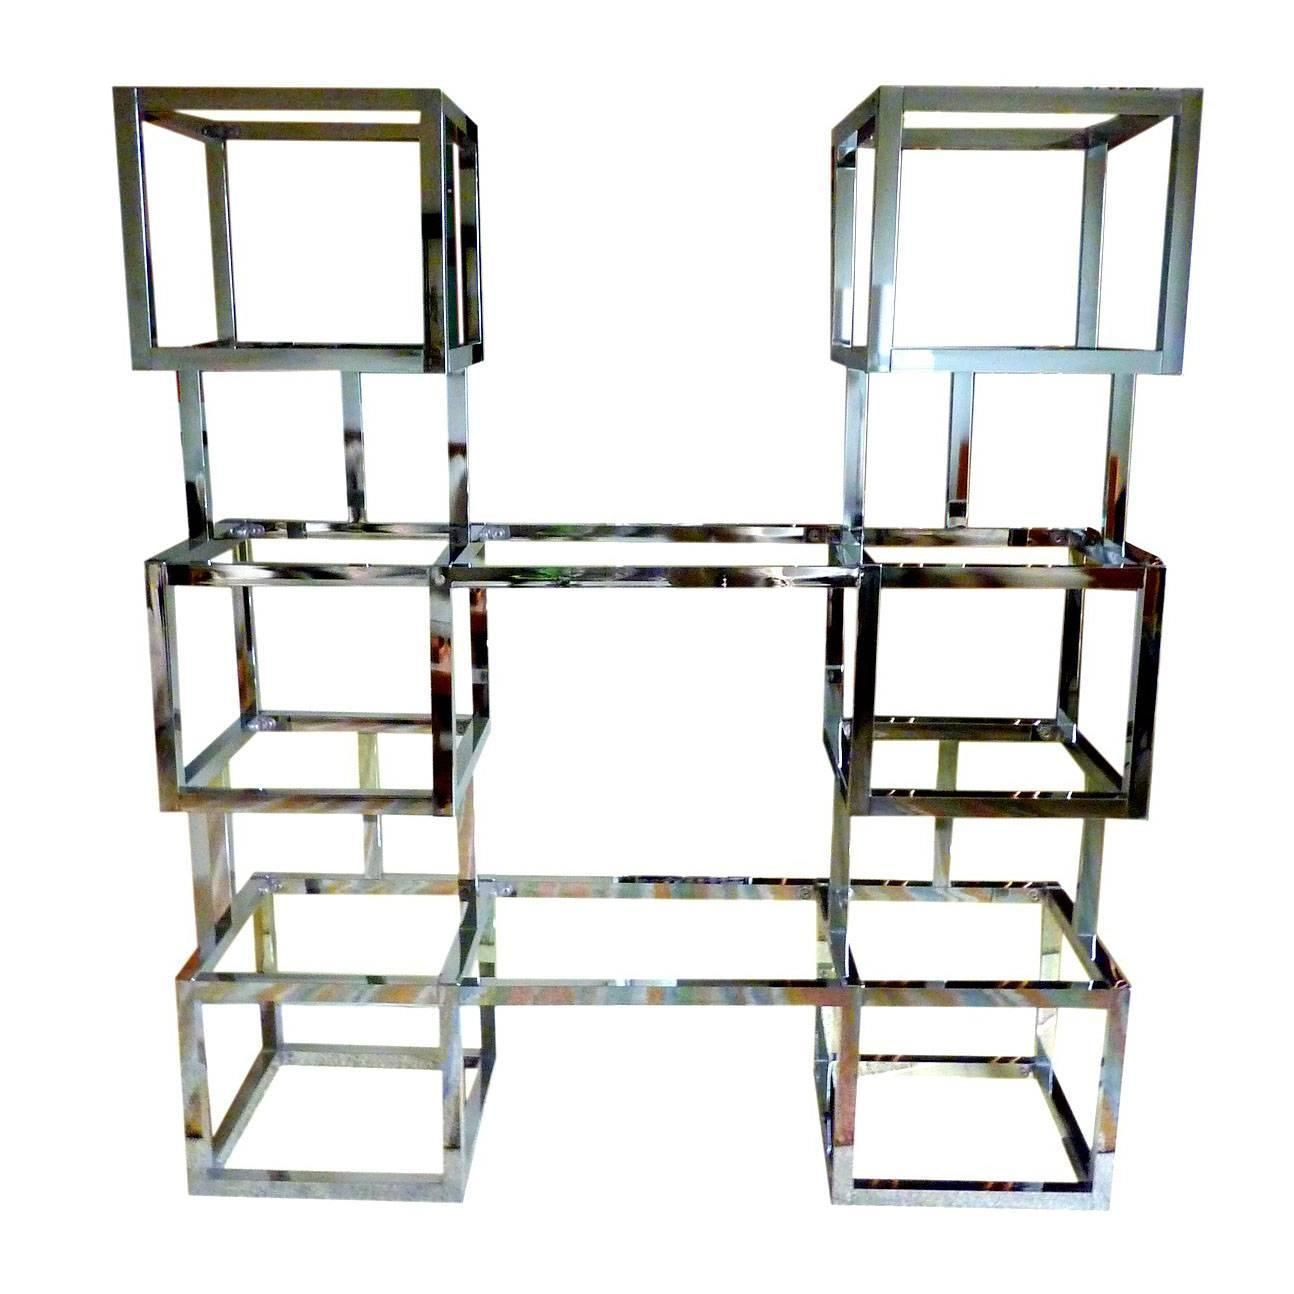 Nice Chrome And Glass Etagere | See More Antique And Modern Bookcases At Https://